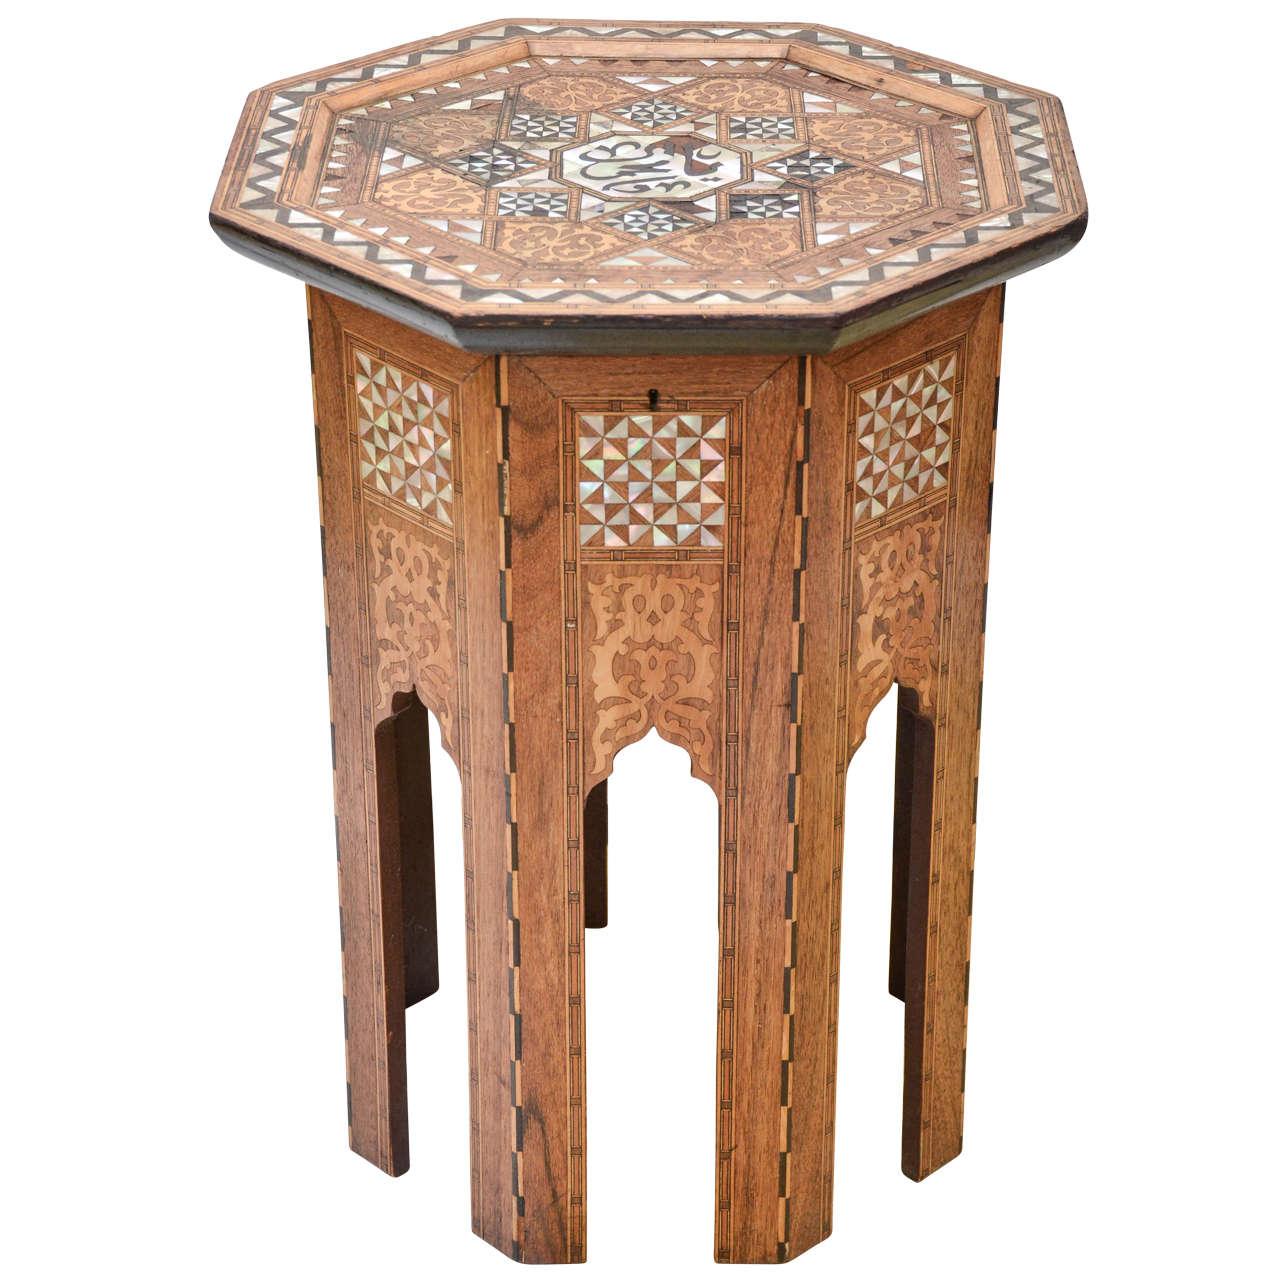 Syrian Tall Octagonal Inlaid Sewing Box Table At 1stdibs. Full resolution‎  image, nominally Width 1280 Height 1280 pixels, image with #79492B.